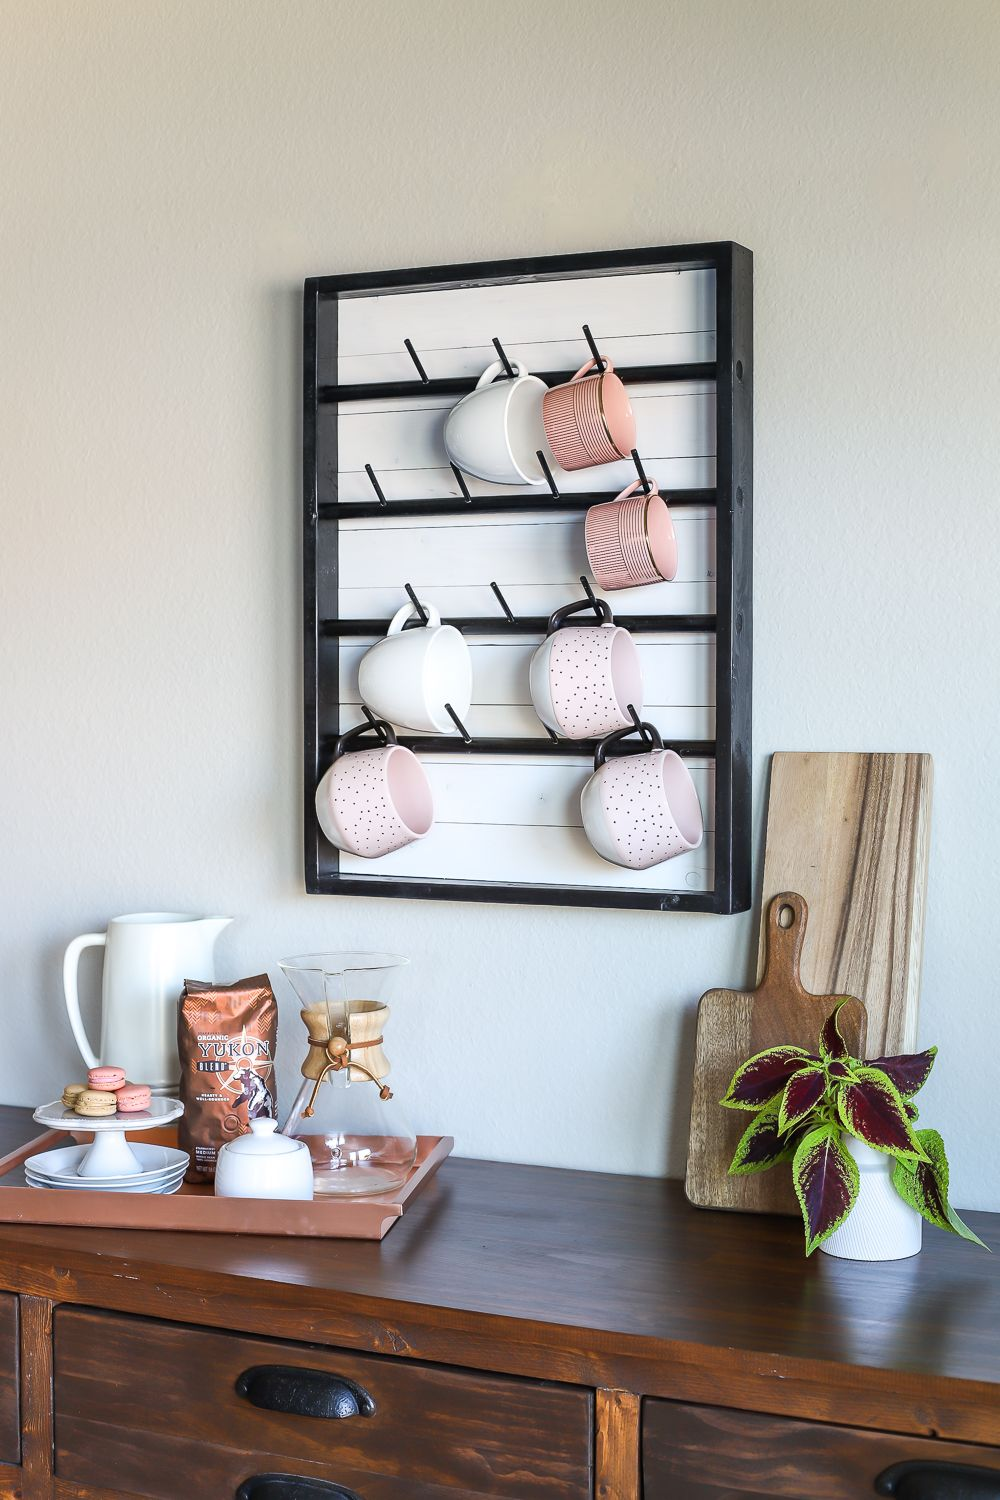 How To Make A Diy Wall Mounted Coffee Mug Display Rack Wall